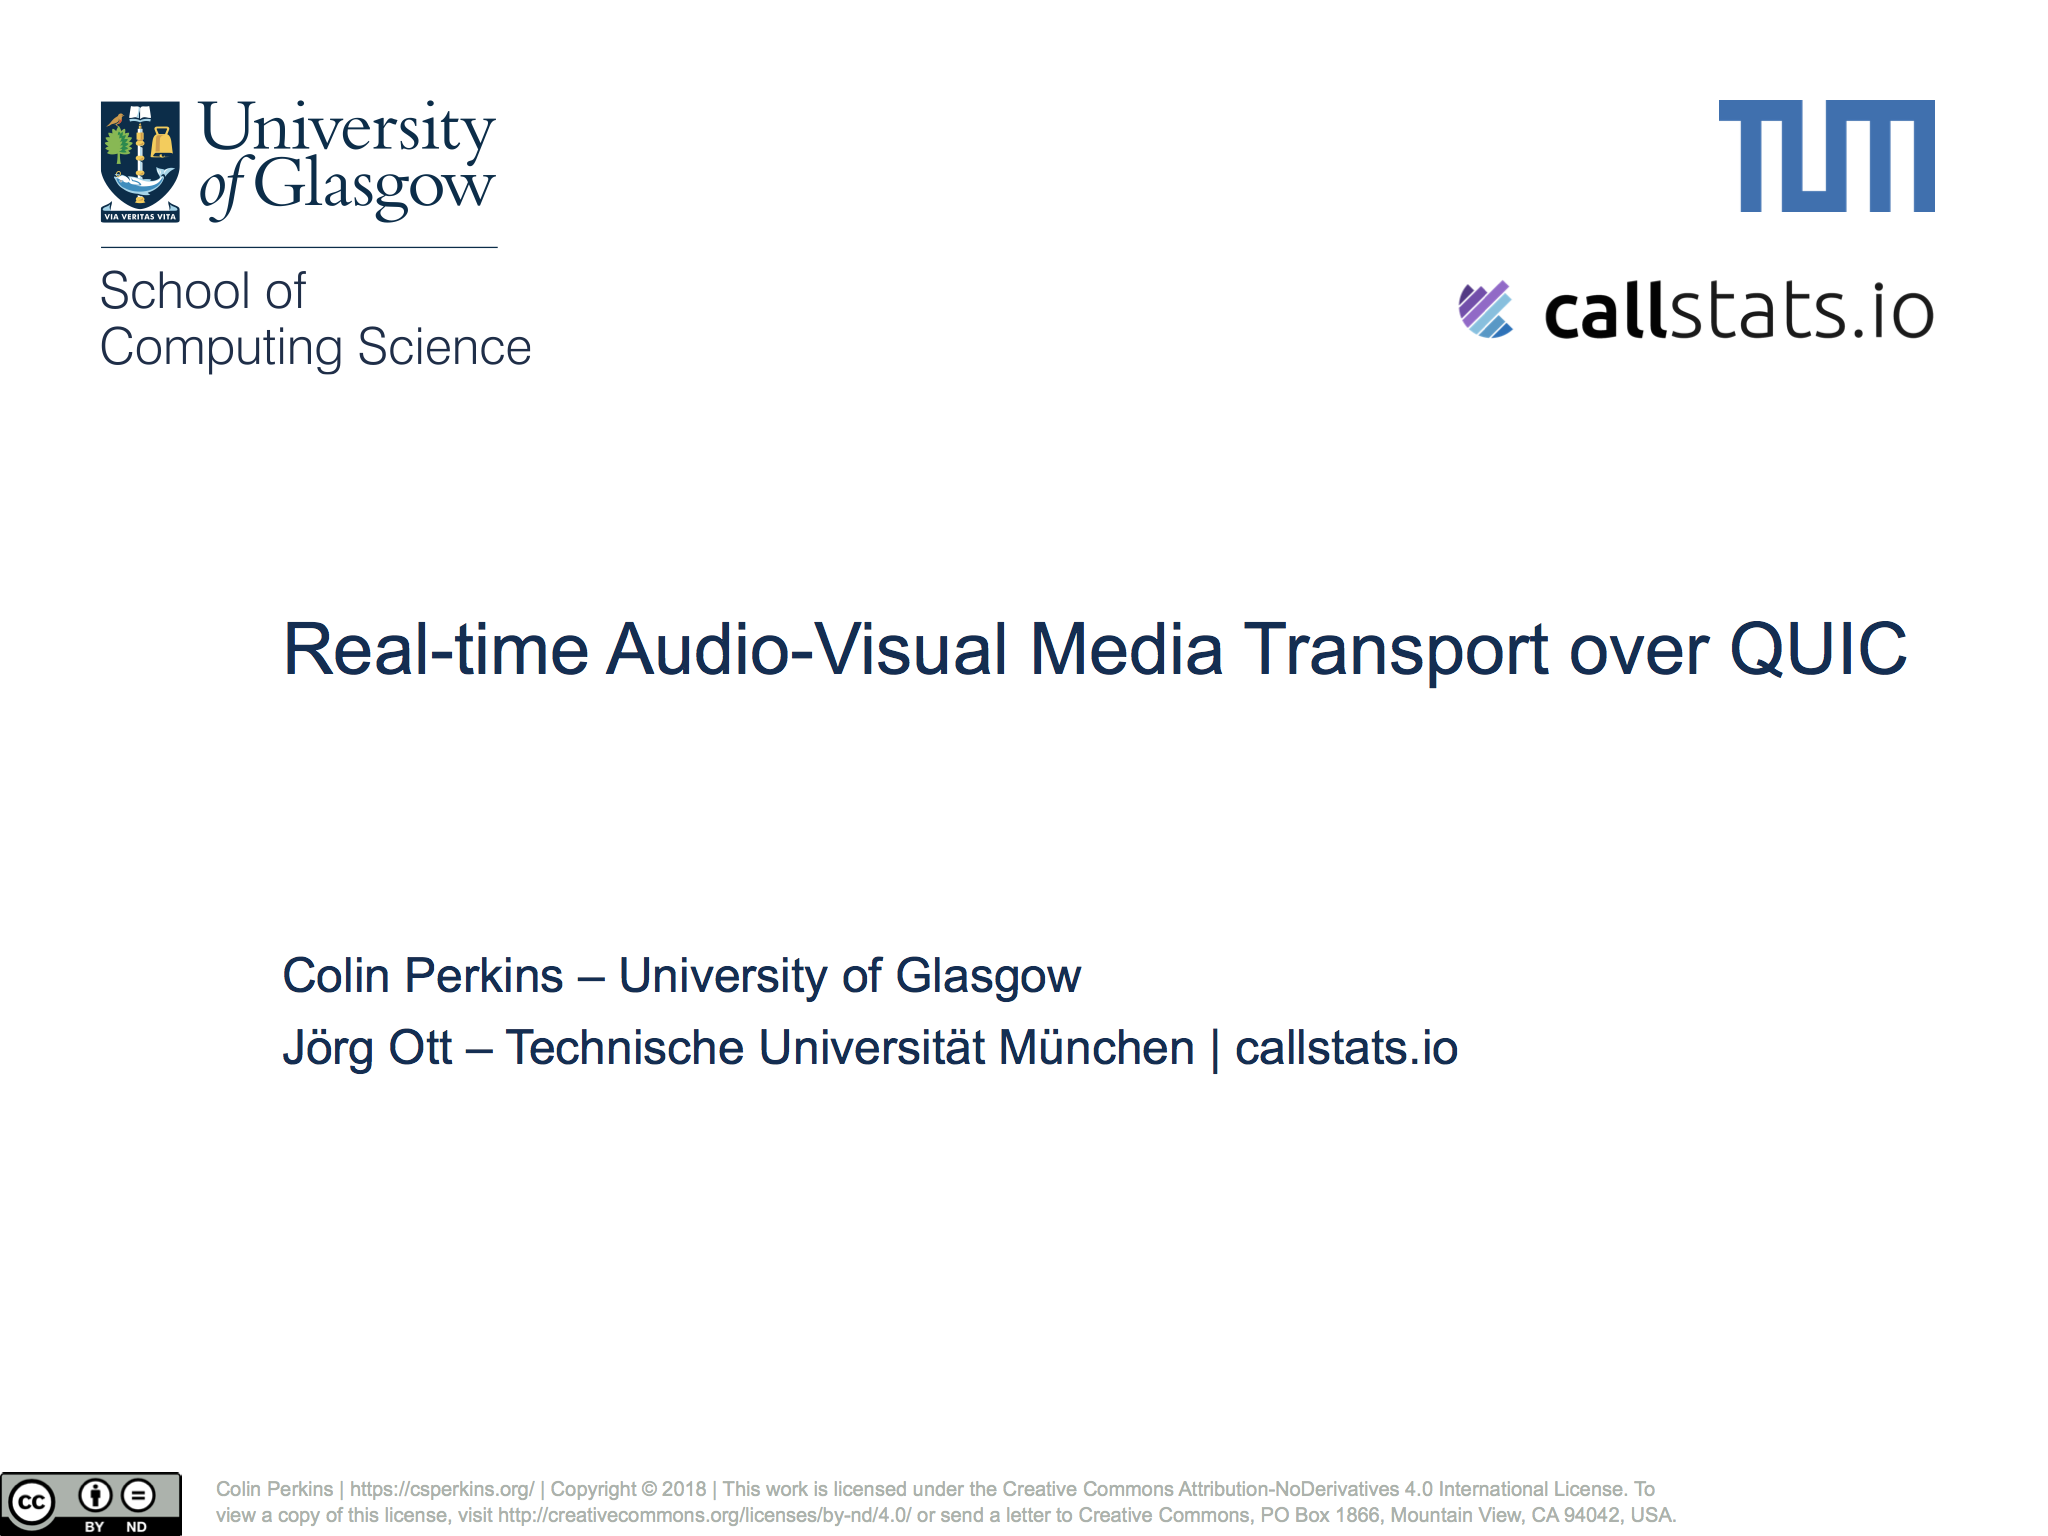 Presentation on Real-time Audio-Visual Media Transport over QUIC